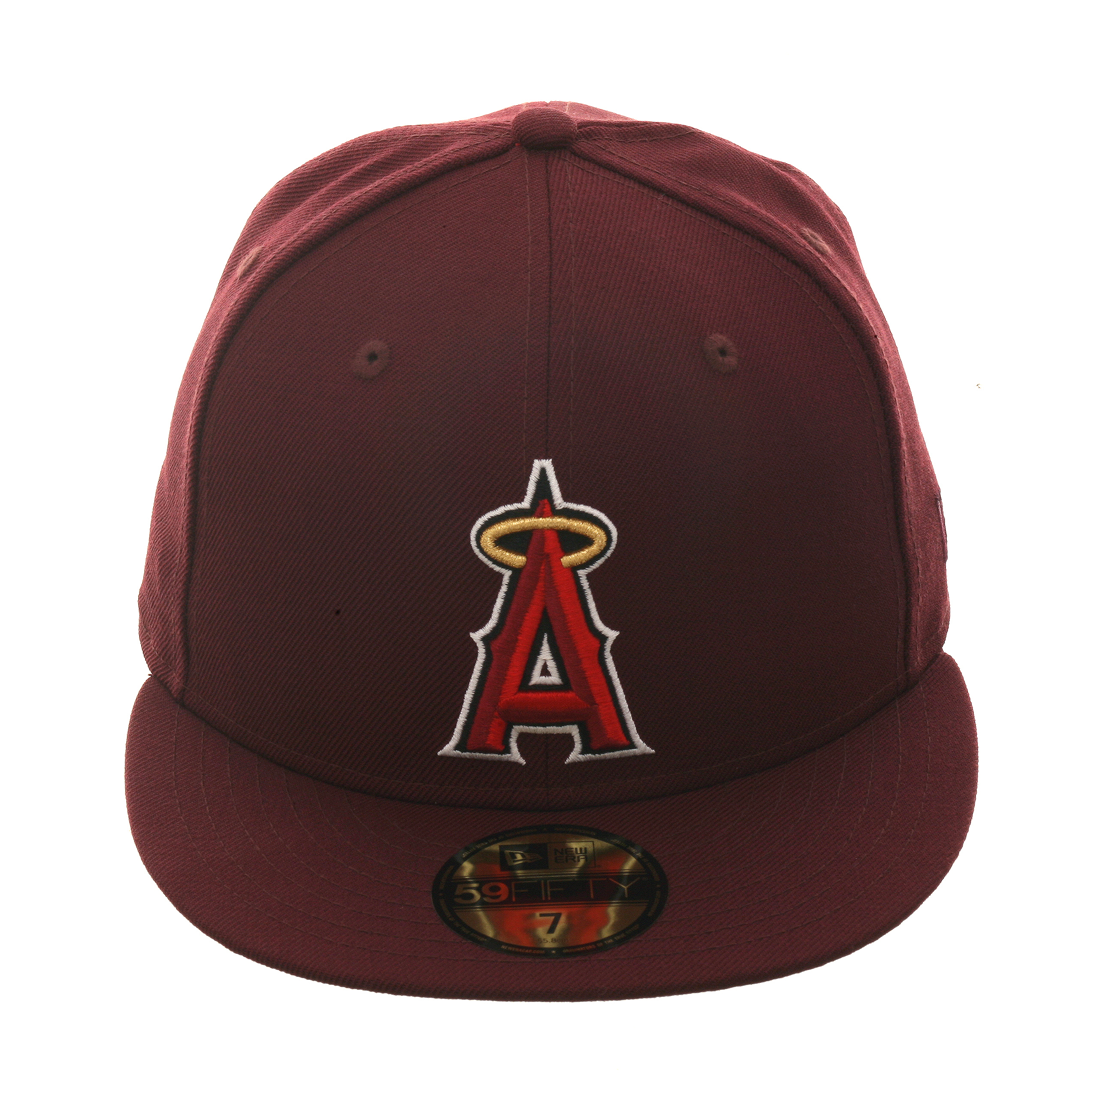 d5ae29a3 Exclusive New Era 59Fifty Los Angeles Angels Hat - Maroon in 2019 ...